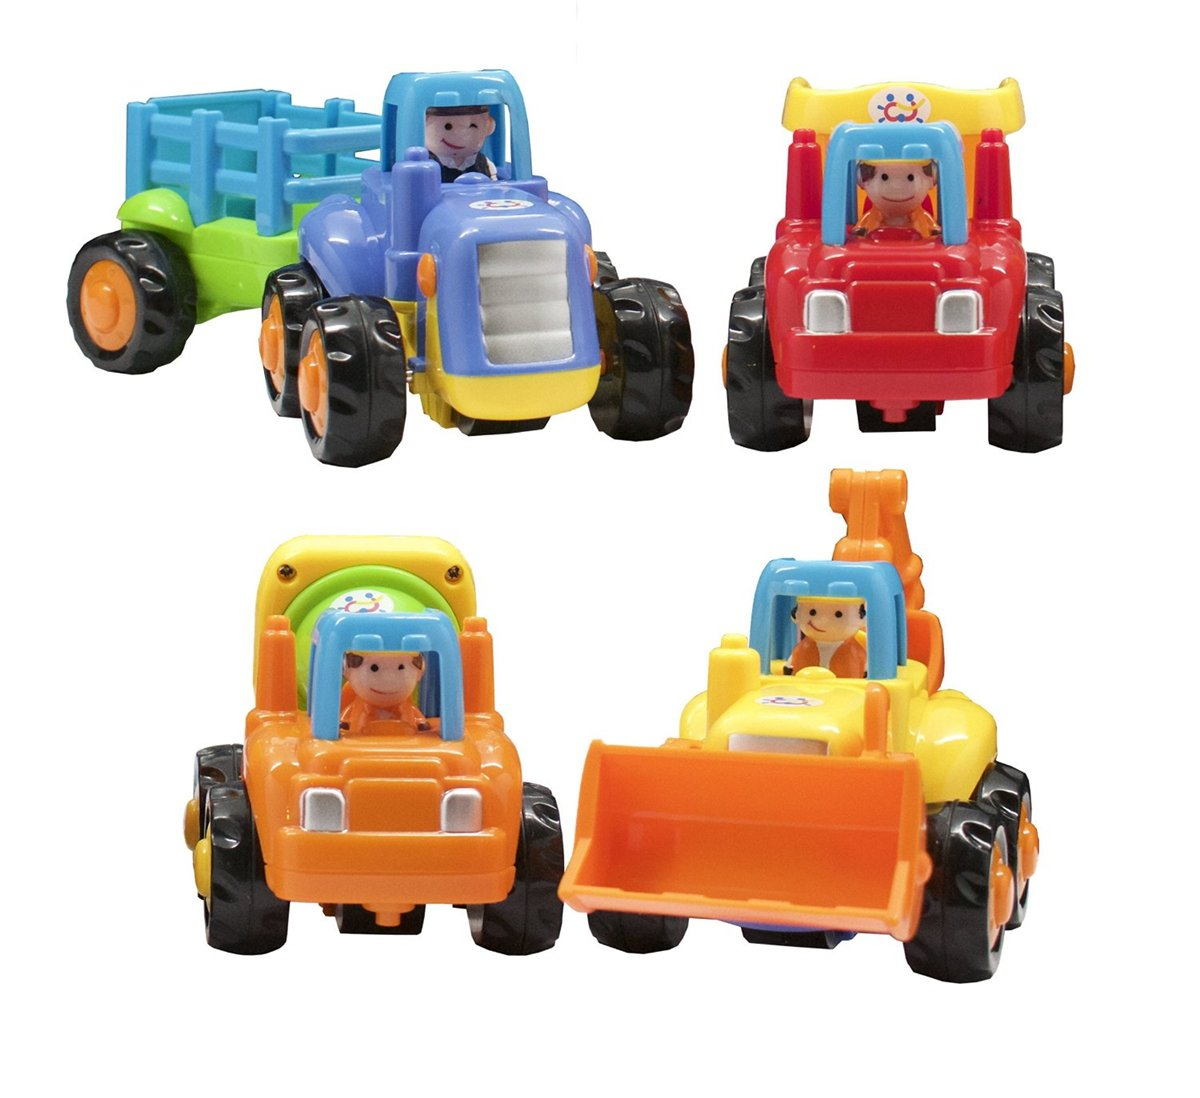 Push and Go Cartoon Friction Powered Play Engineering Vehicles Car Toys for 3 Year Old Boys Toddlers Kids Tractor Dump Truck Cement Truck Excavator Mixer Bulldozer Tractor SET OF 4